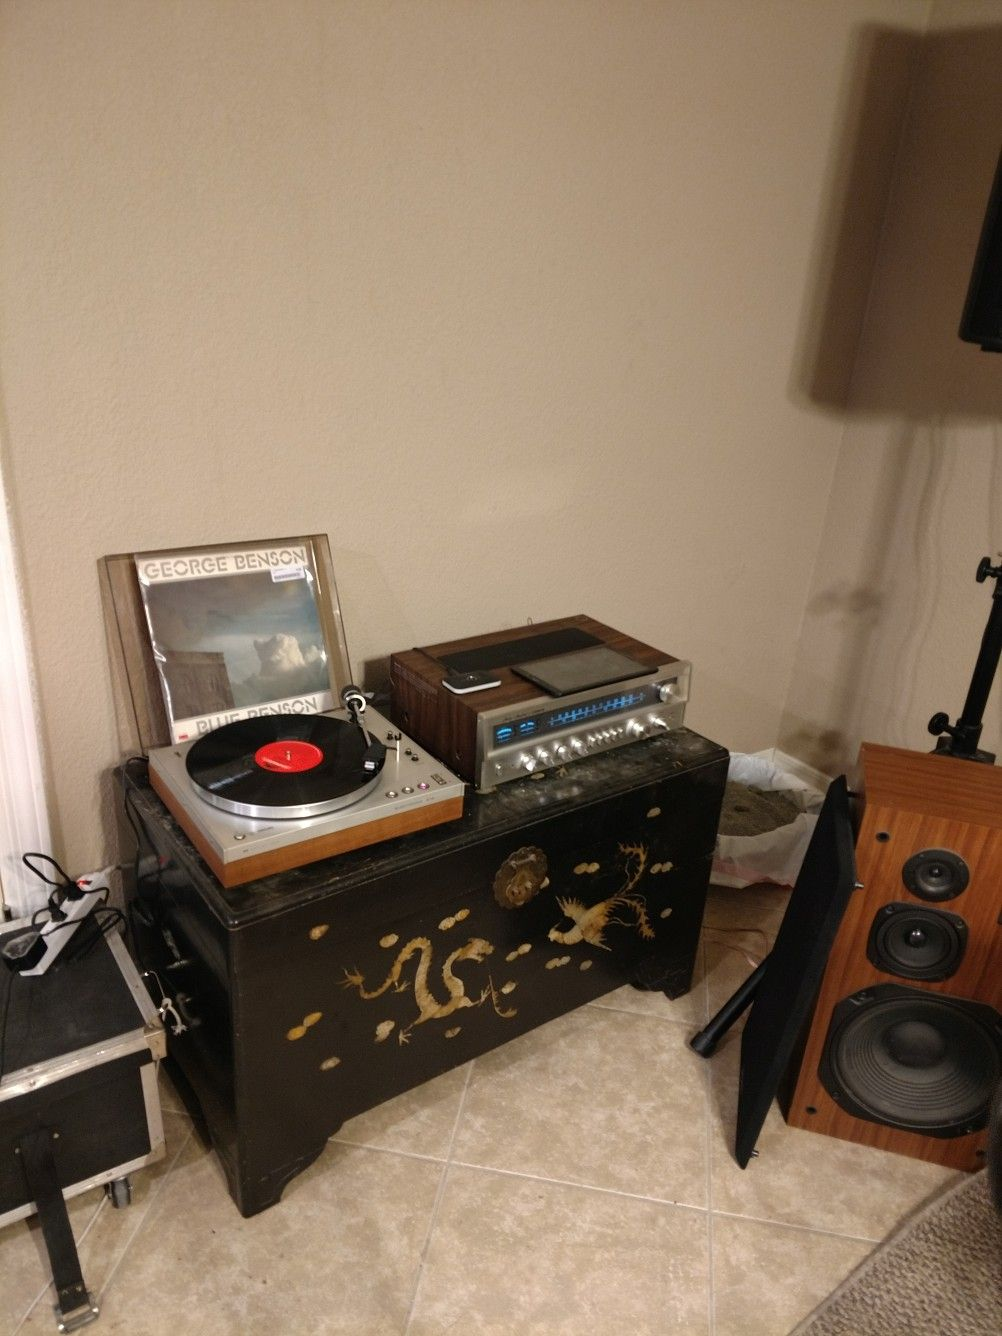 My new Phillips Turntable and Fisher Receiver | STEREO